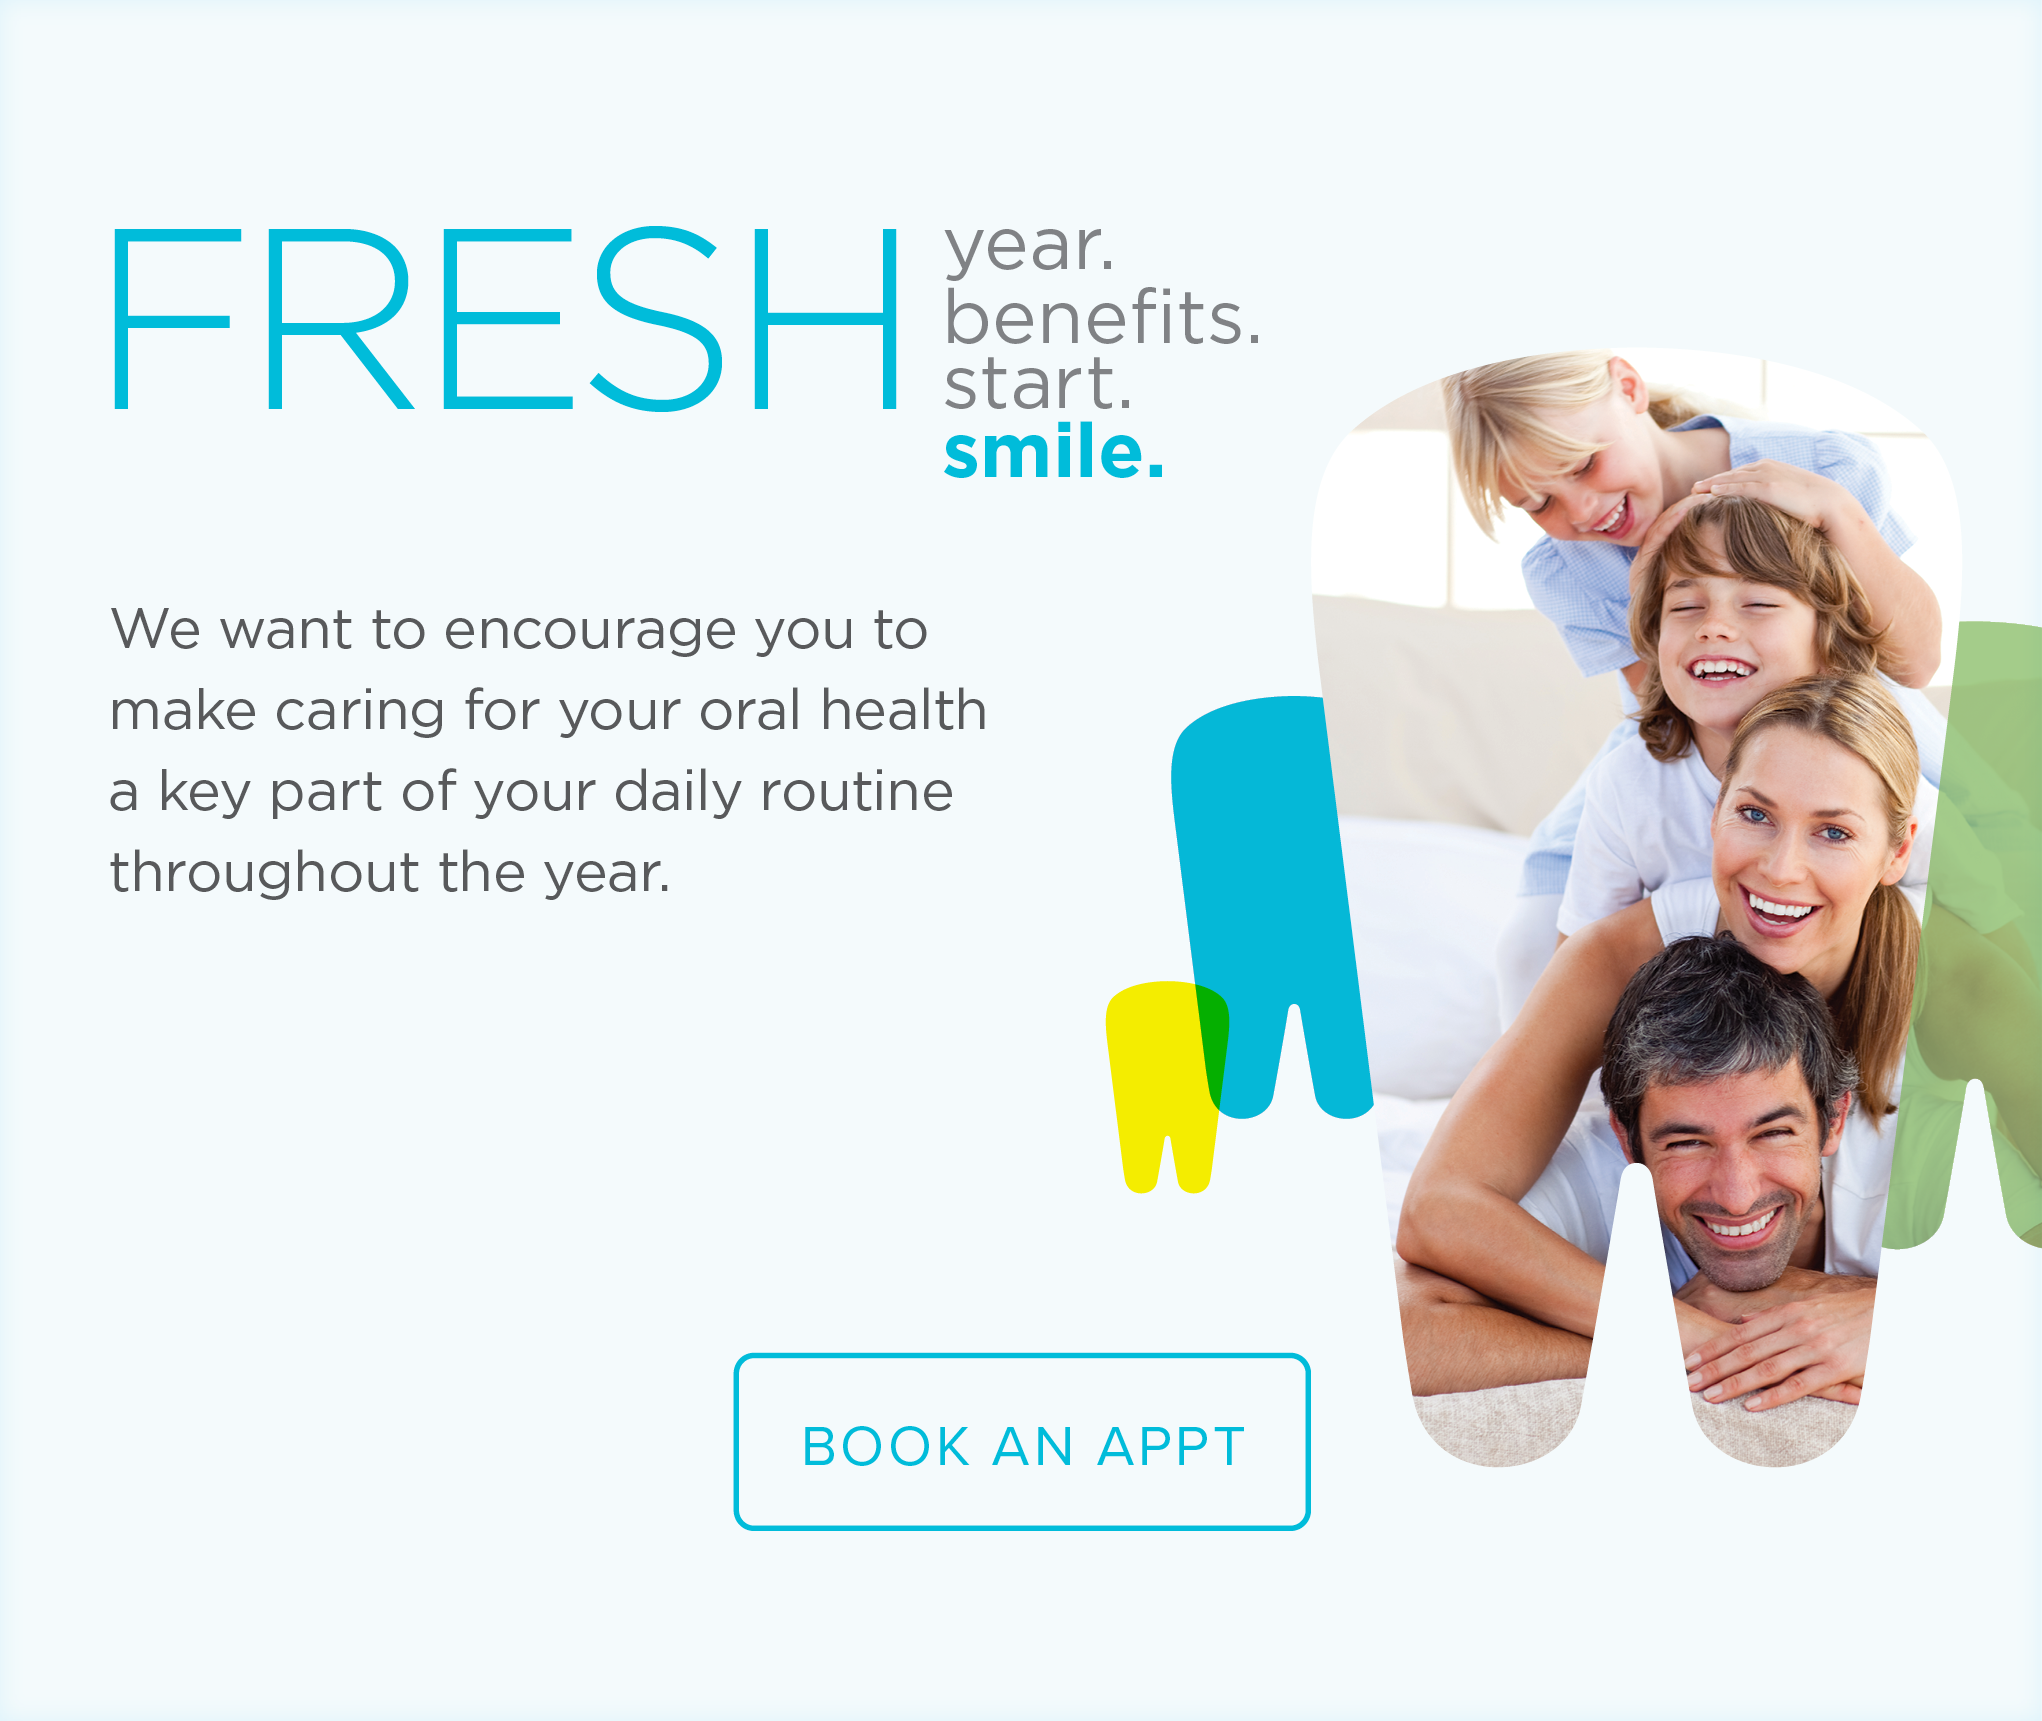 Carlsbad Village Faire  Dentists and Orthodontics - Make the Most of Your Benefits